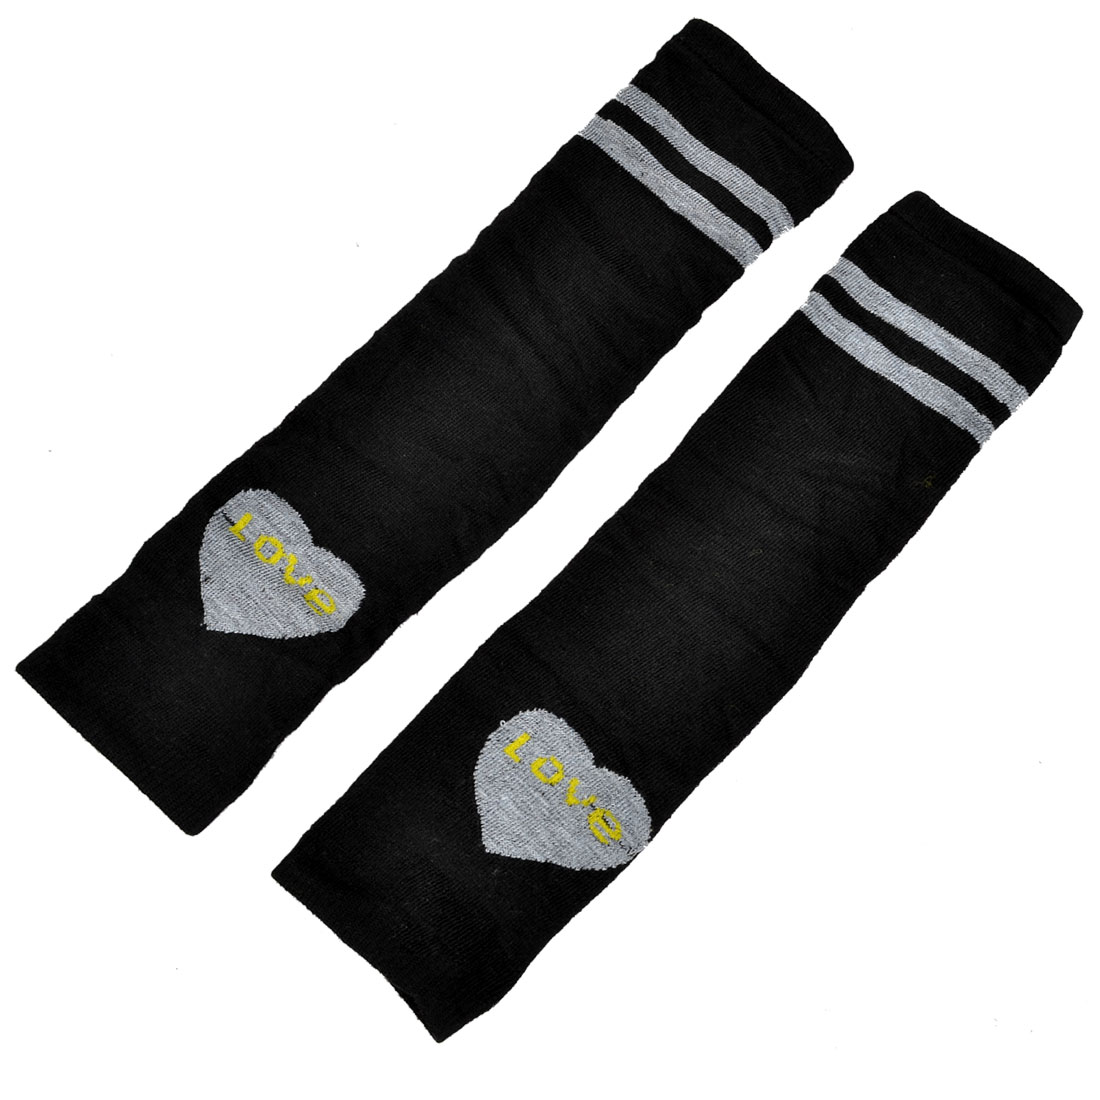 Stretchy Fingerless Stripe Heart Print Long Arm Warmers Elbow Gloves Pair Black